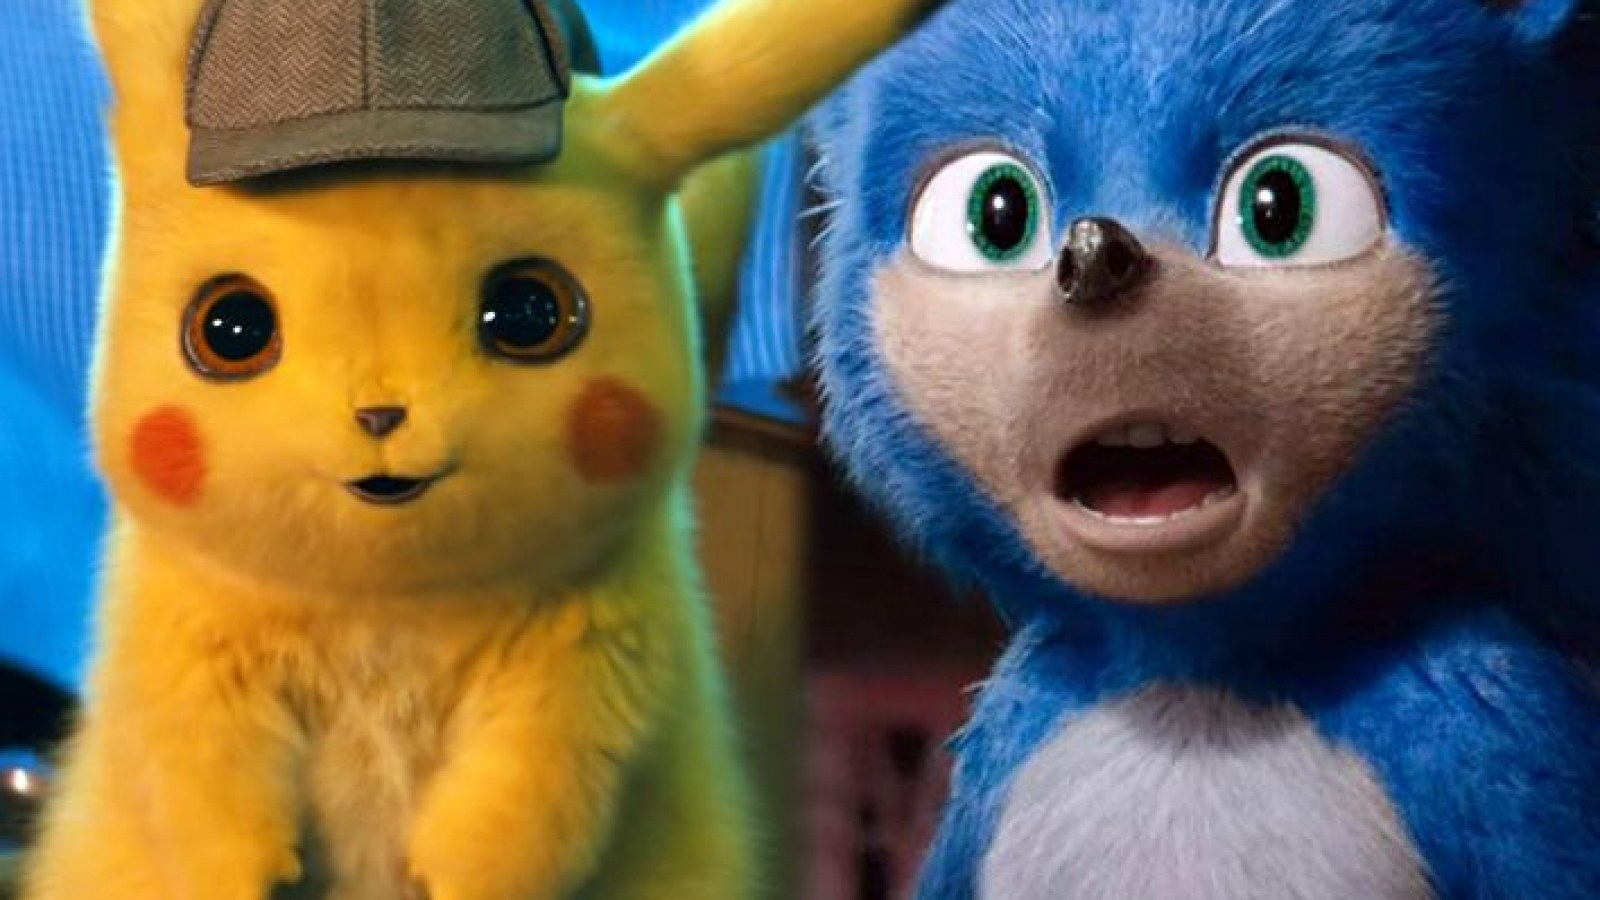 Detective Pikachu Cinematographer Explains Why His Movie Looks Better Than Sonic The Hedgehog